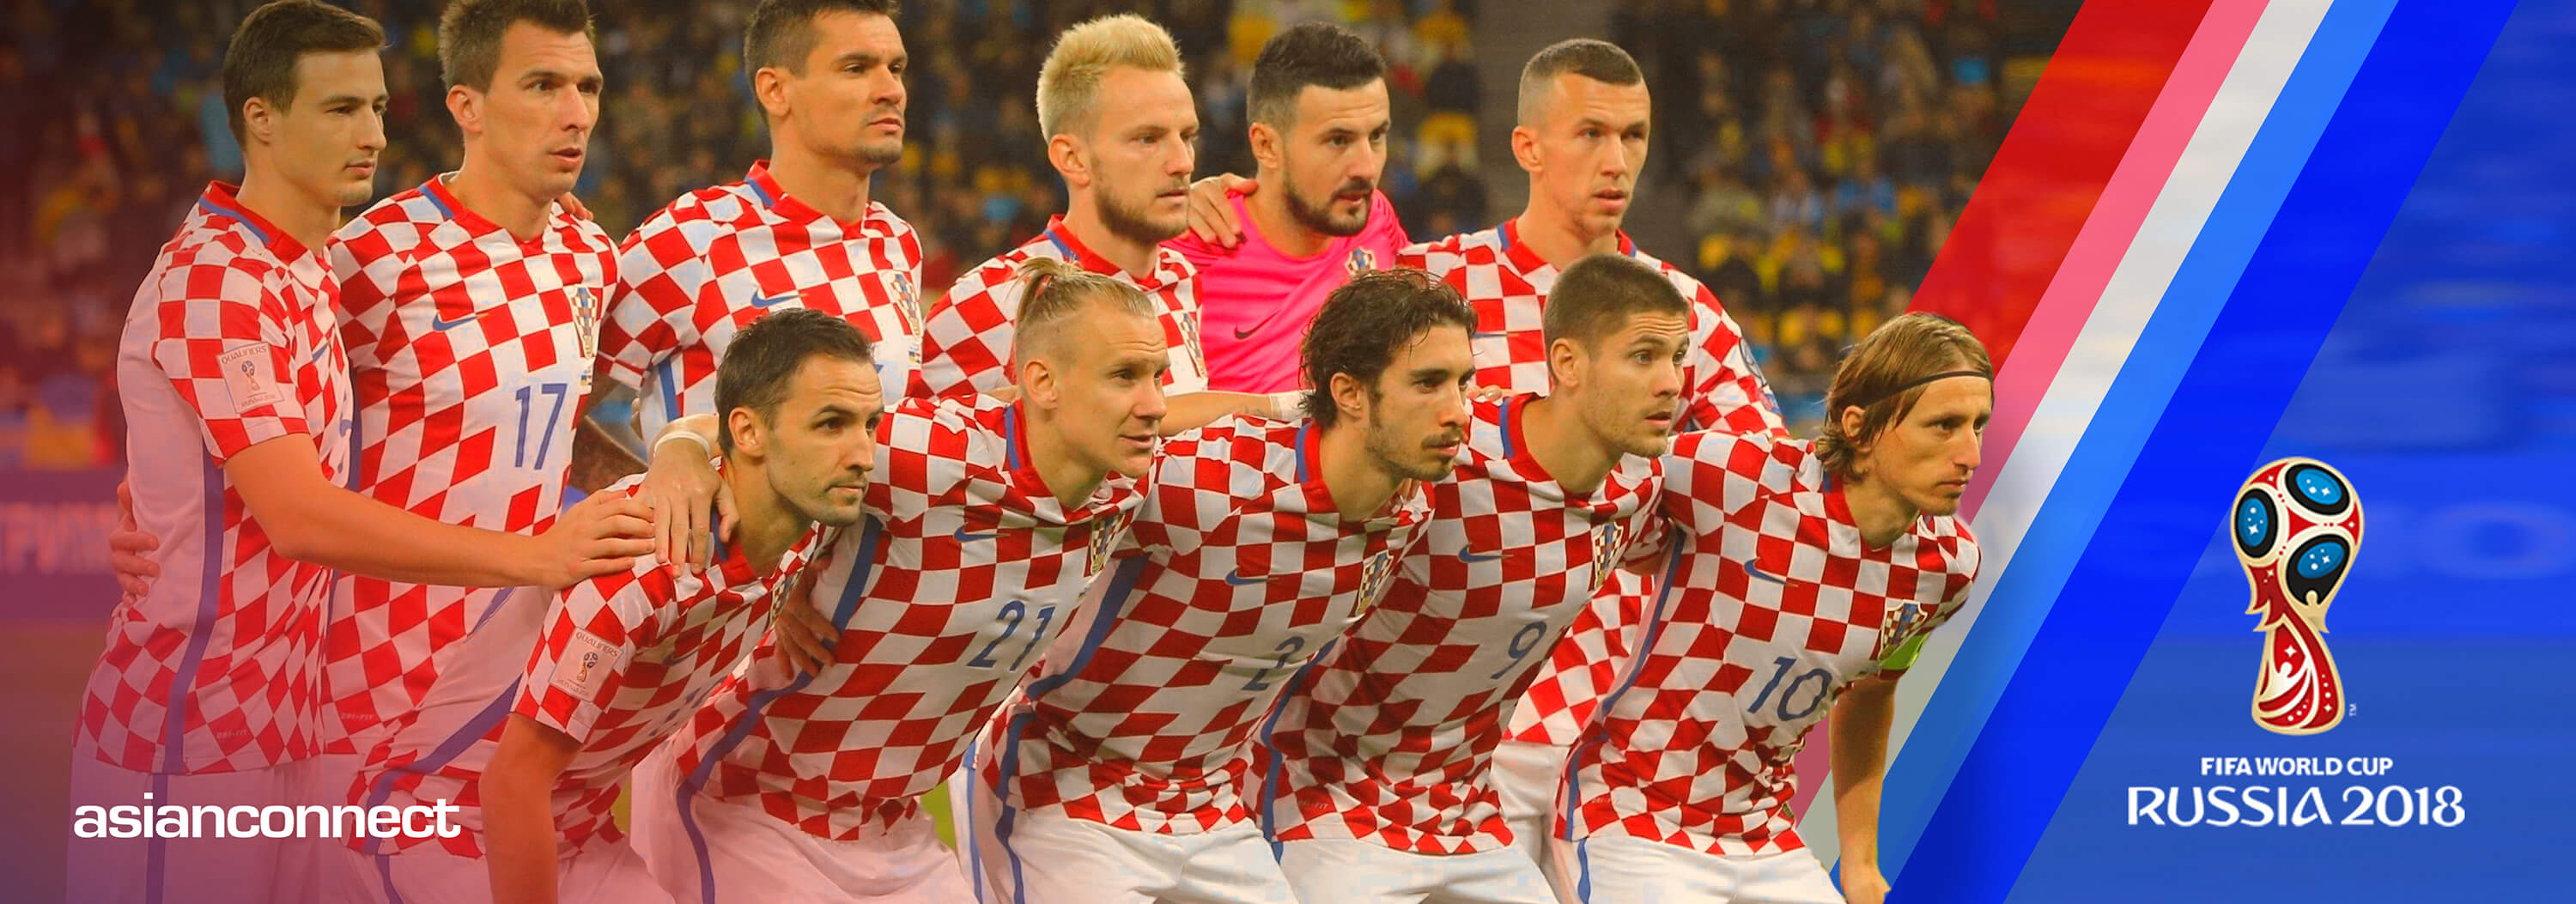 World Cup 2018 Croatia